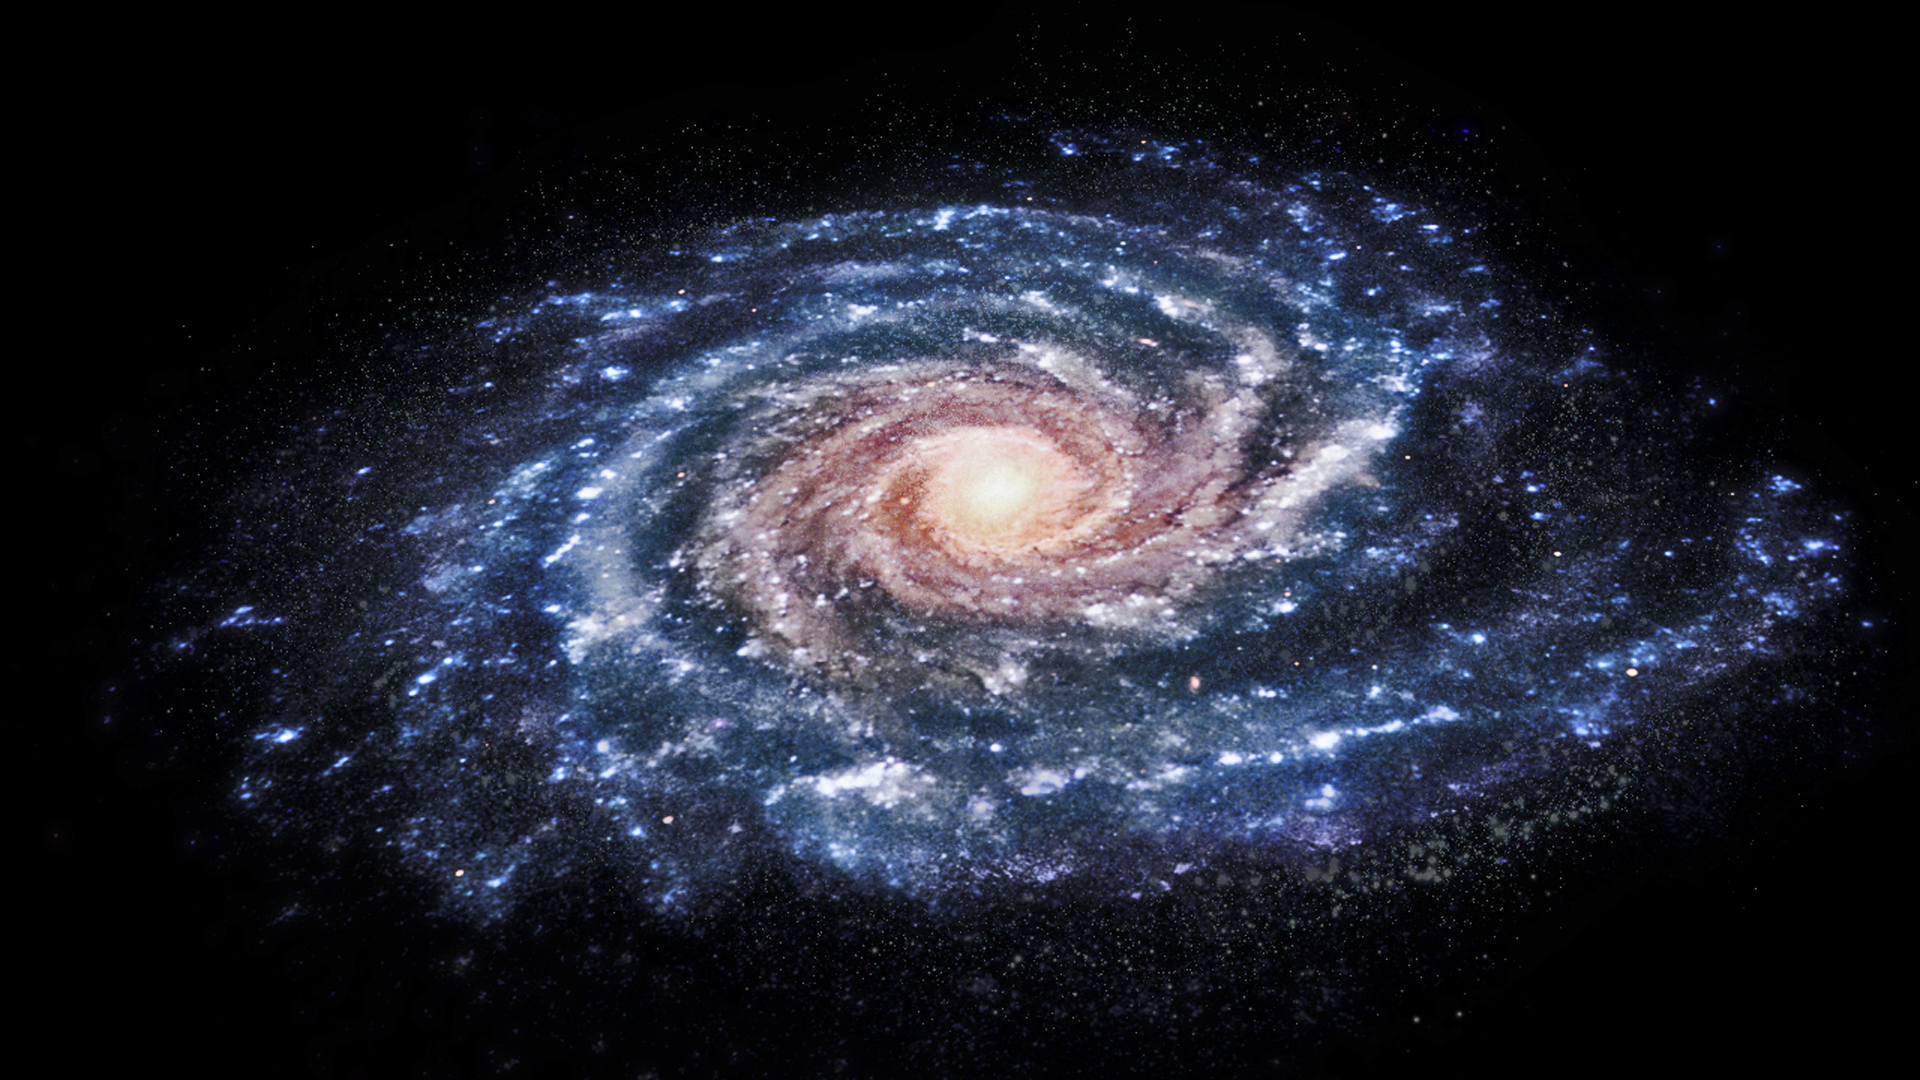 Esa Science Amp Technology Artist S Impression Of Our Galaxy